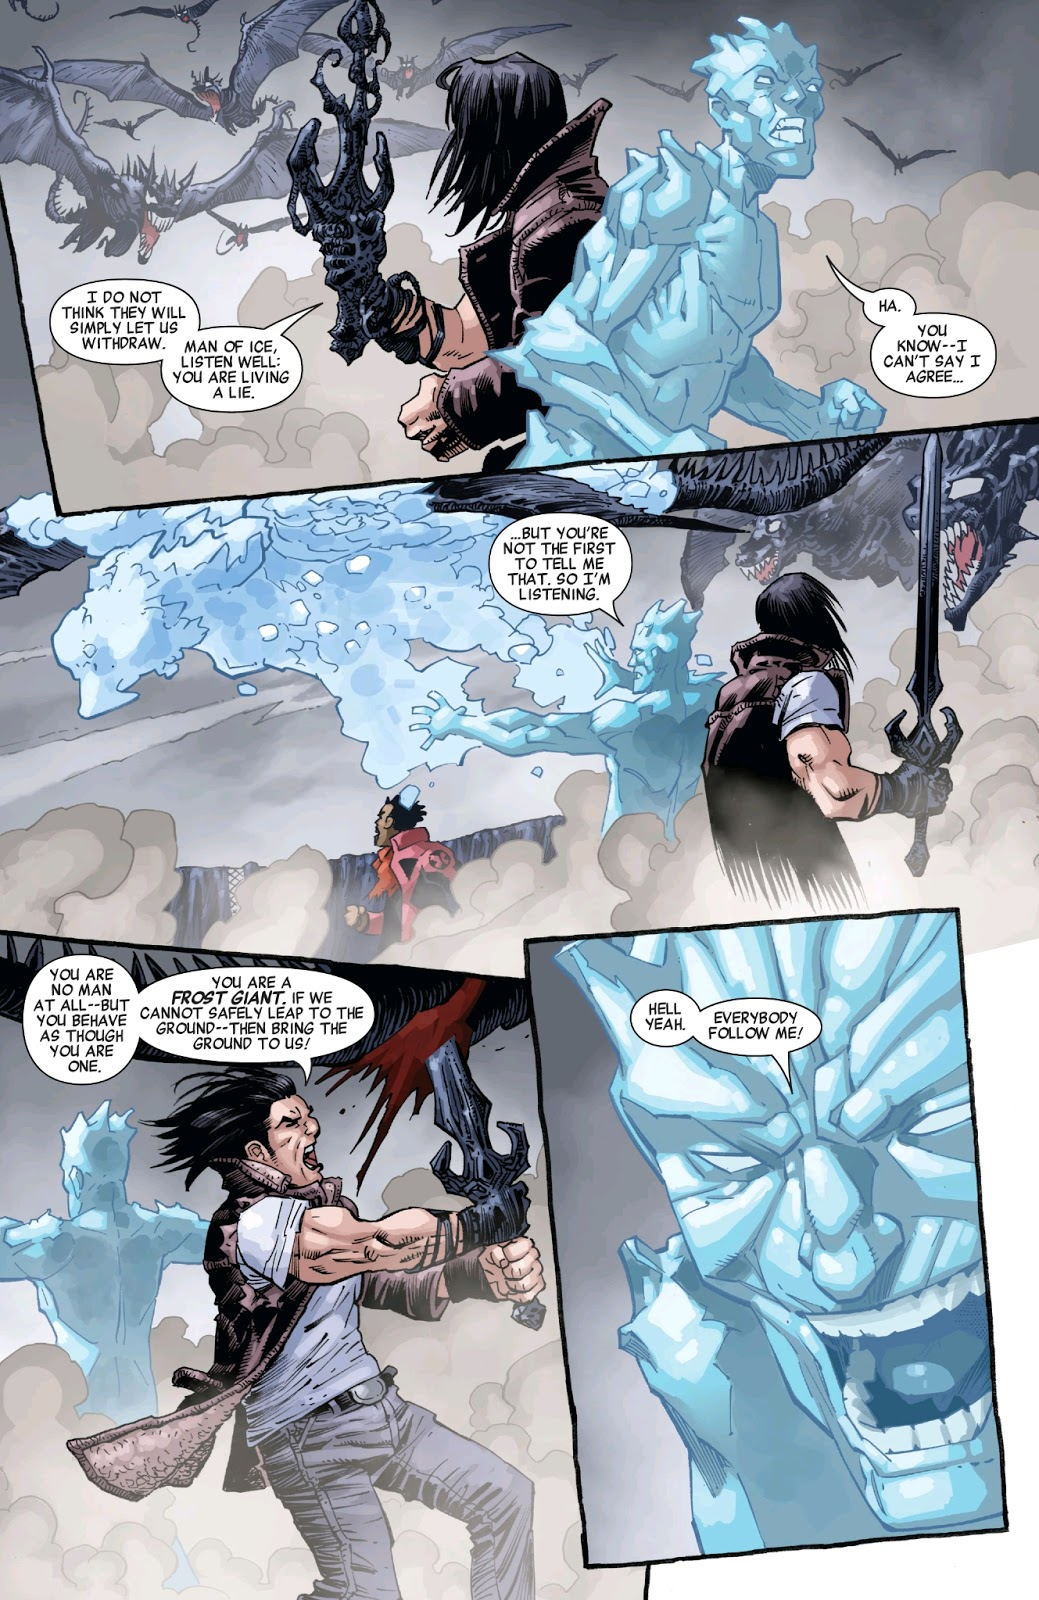 Conan The Barbarian Gives Iceman A Pep Talk